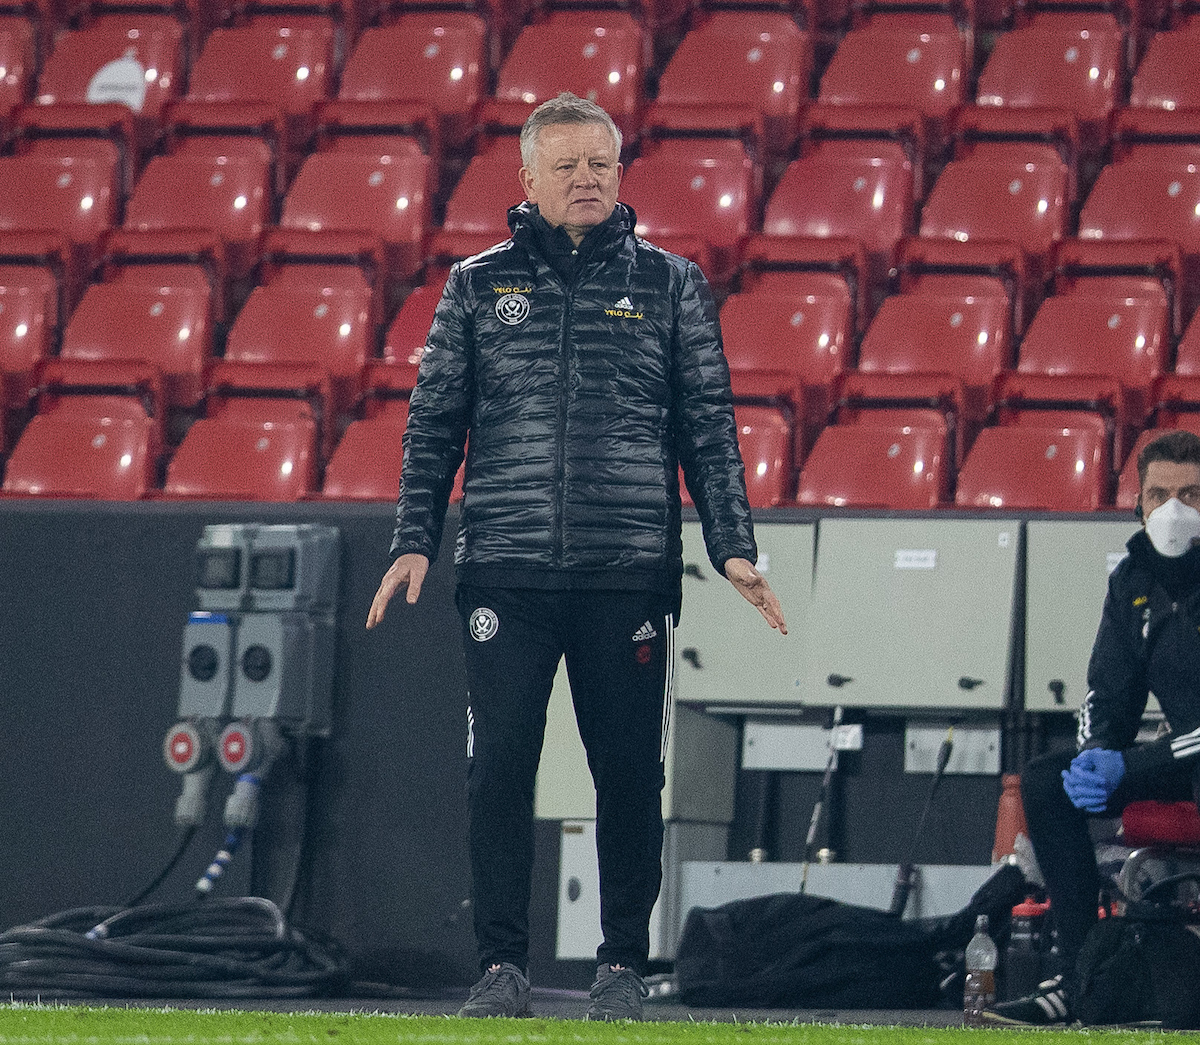 Sheffield United's manager Chris Wilder during the FA Premier League match between Sheffield United FC and Liverpool FC at Bramall Lane